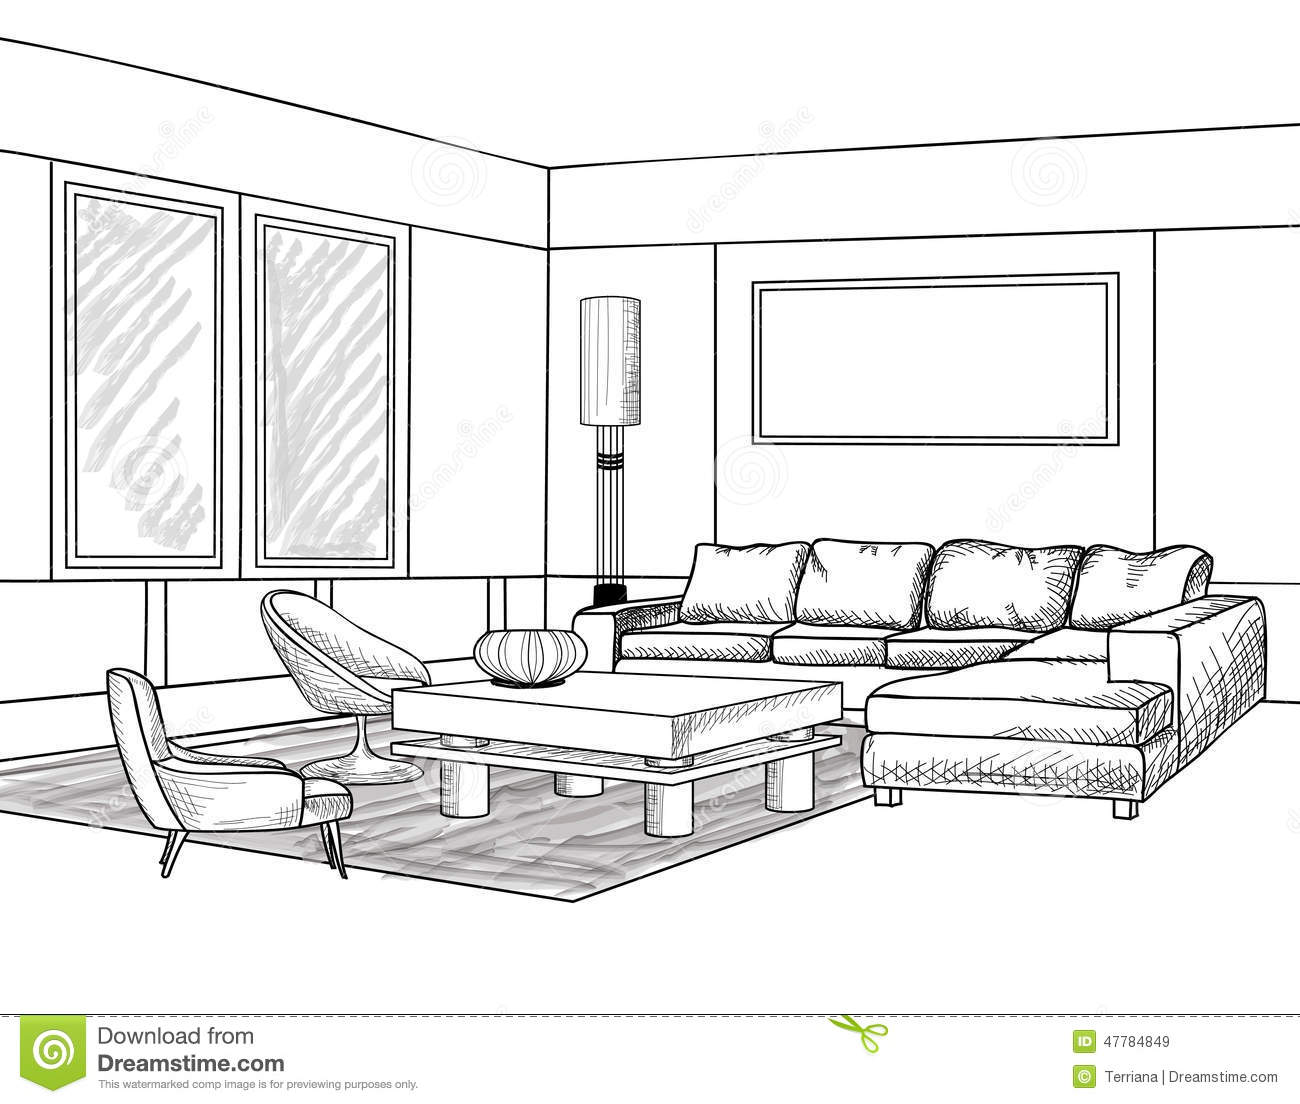 Interior Outline Sketch Furniture Blueprint Illustration 47784849